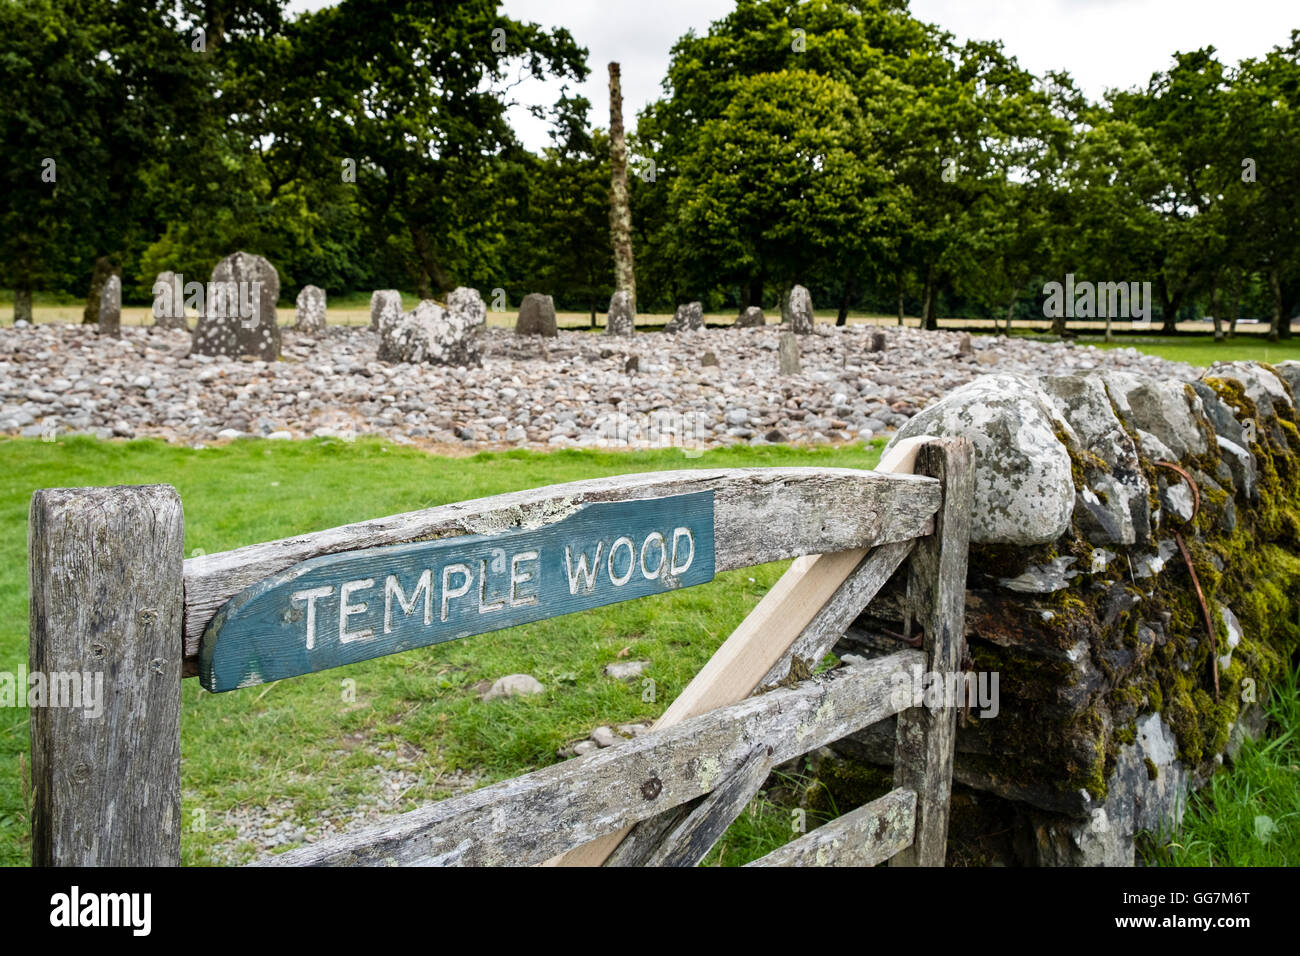 View of ancient standing stone circle at Temple Wood in Kilmartin in Argyll and Bute , Scotland,United Kingdom - Stock Image